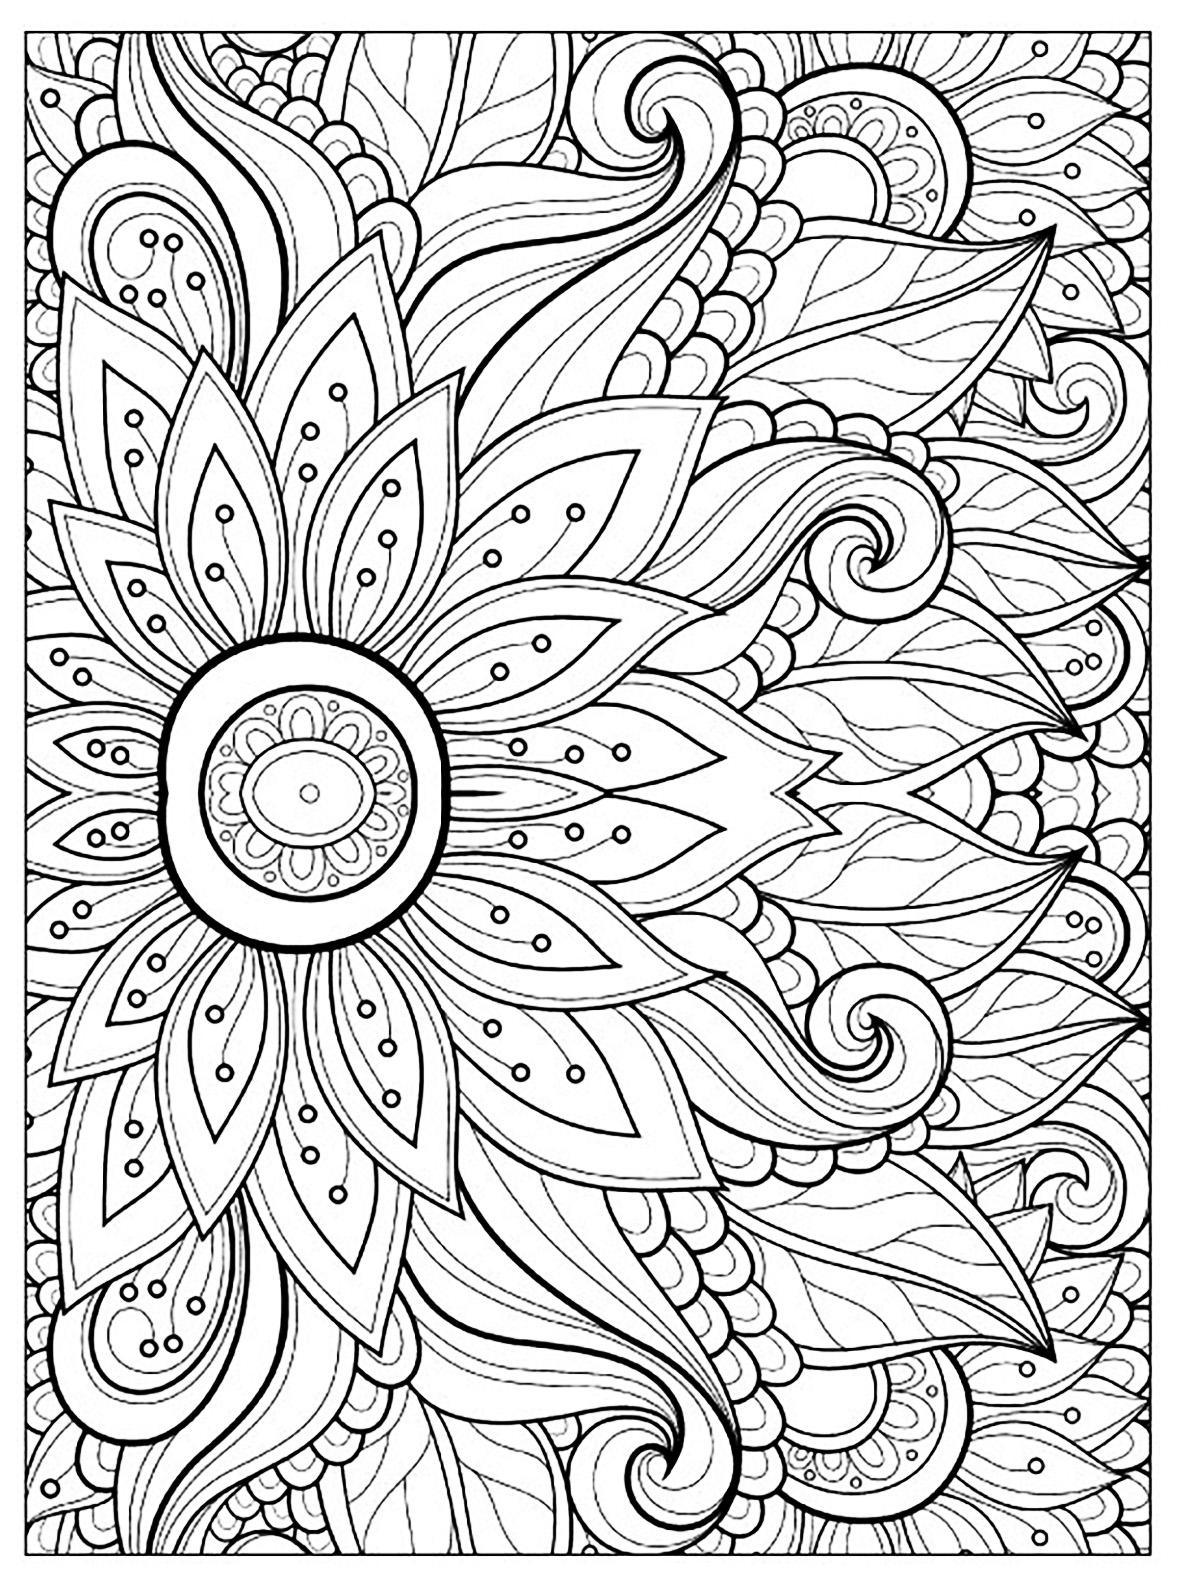 flower coloring pages free printable free encouragement flower coloring page printable fox flower printable free pages coloring